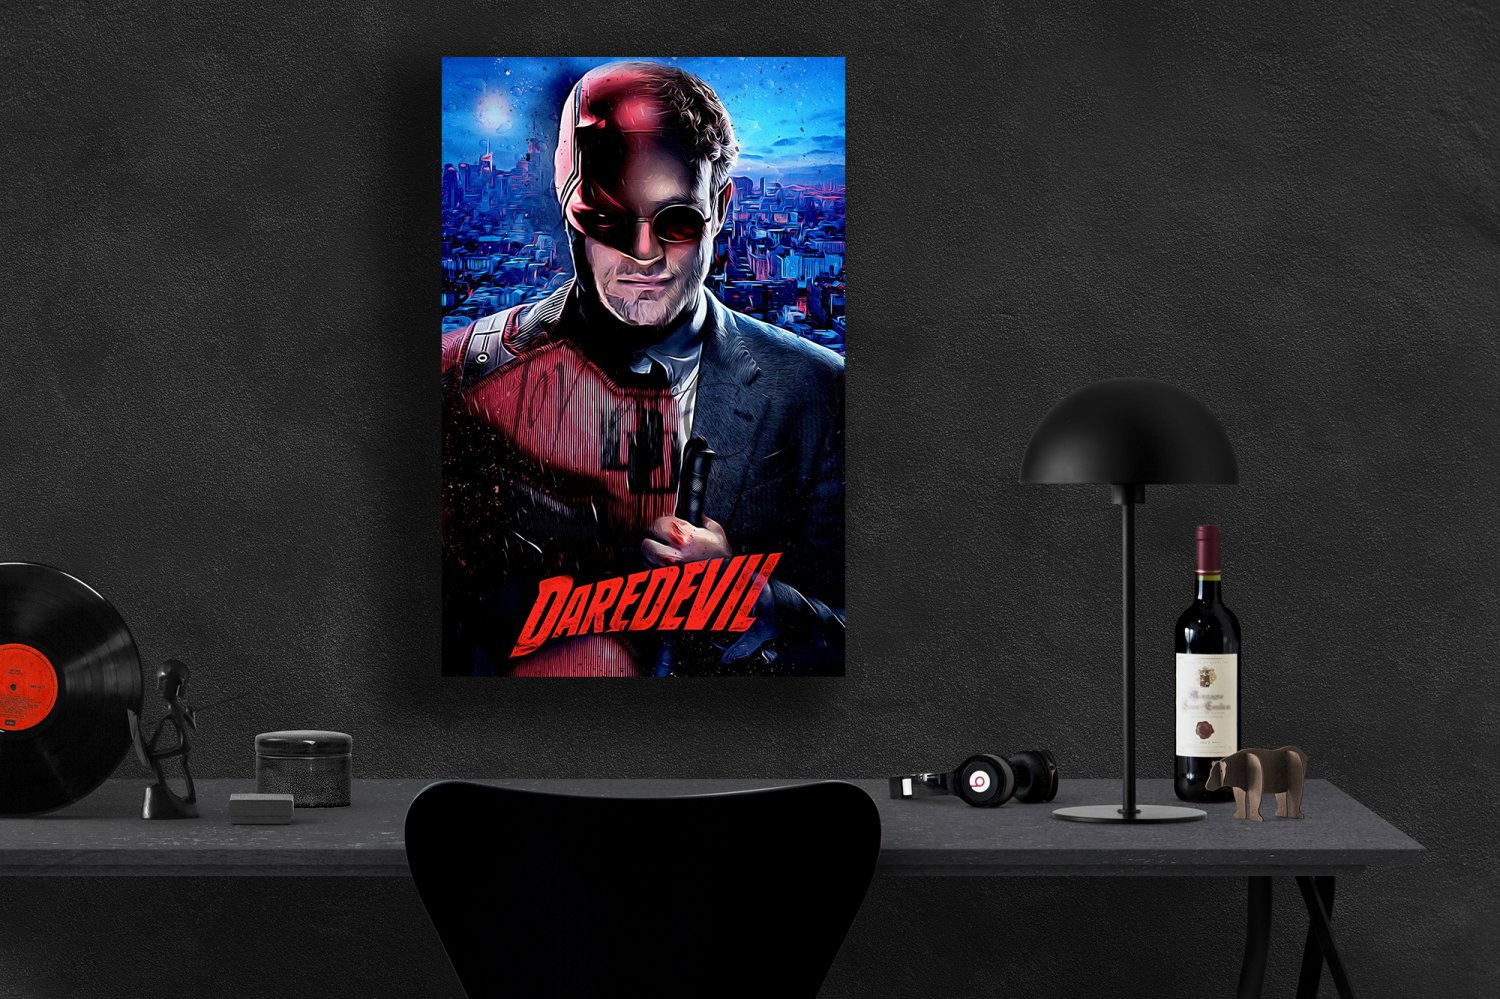 Daredevil, Charlie Cox, Matt Murdock  18x24 inches Canvas Print